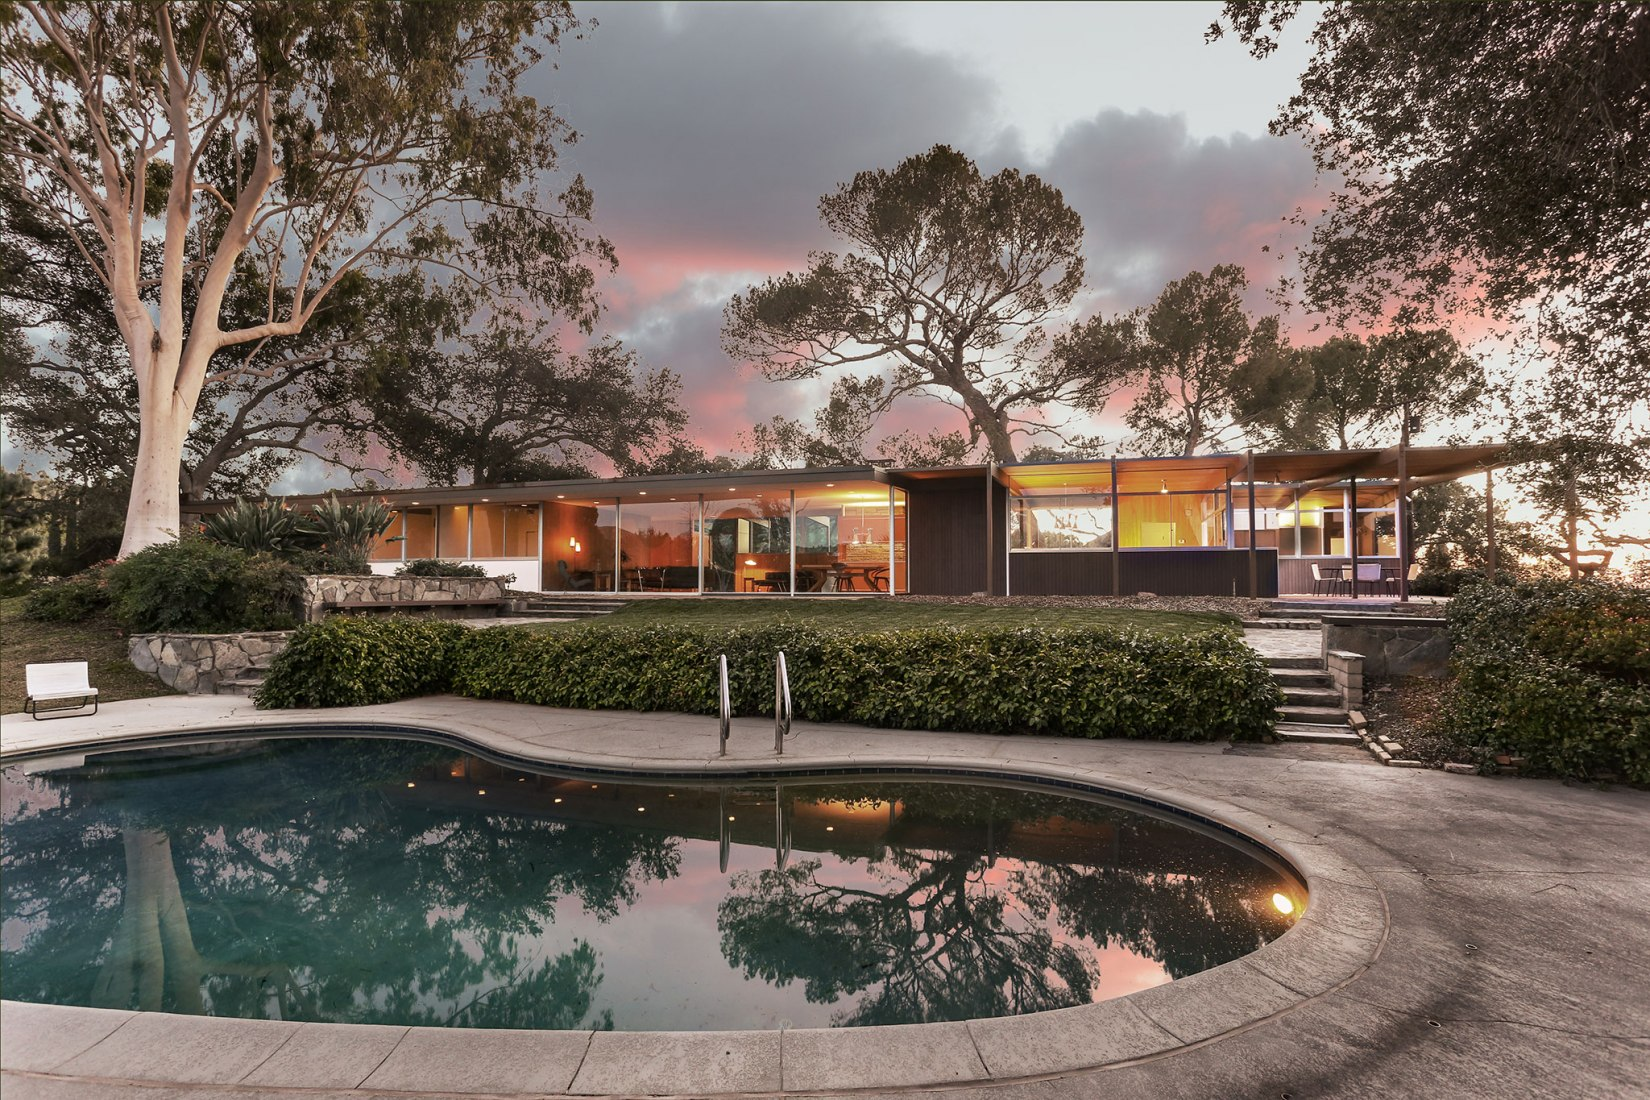 JM Roberts Residence by Richard Neutra. Image courtesy of Cameron Carothers / Crosby Doe Associates